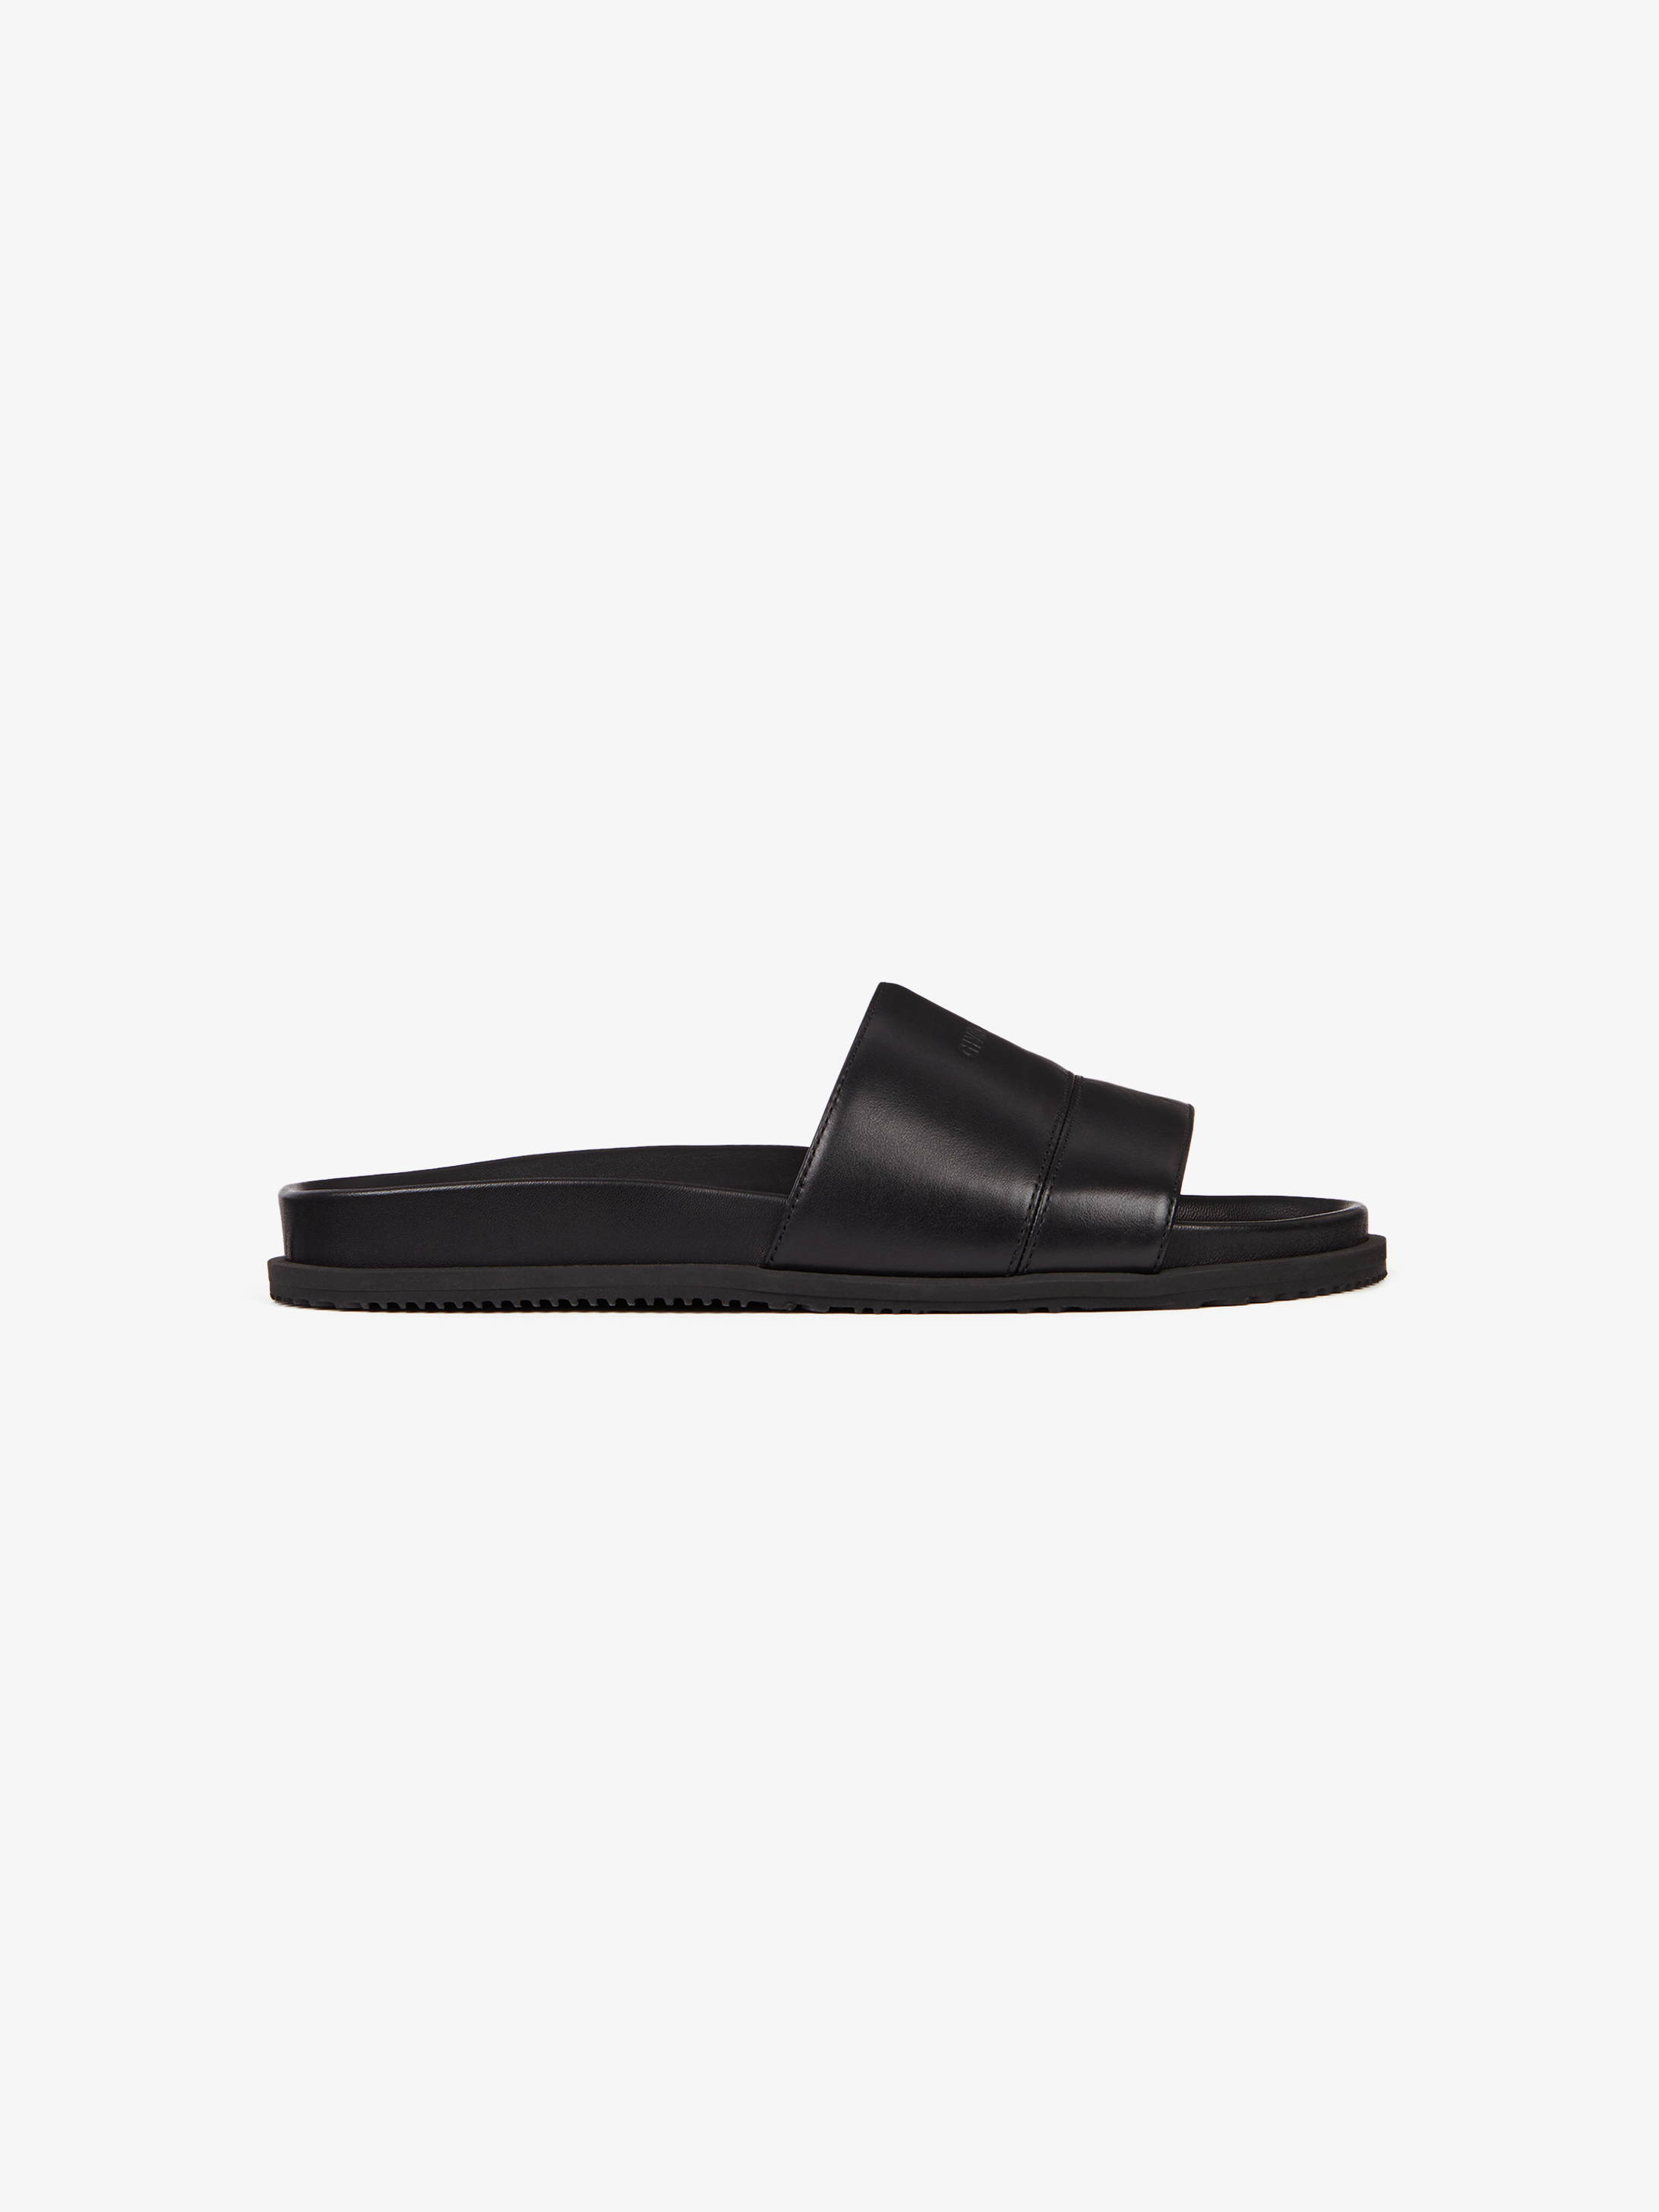 GIVENCHY sandals in leather